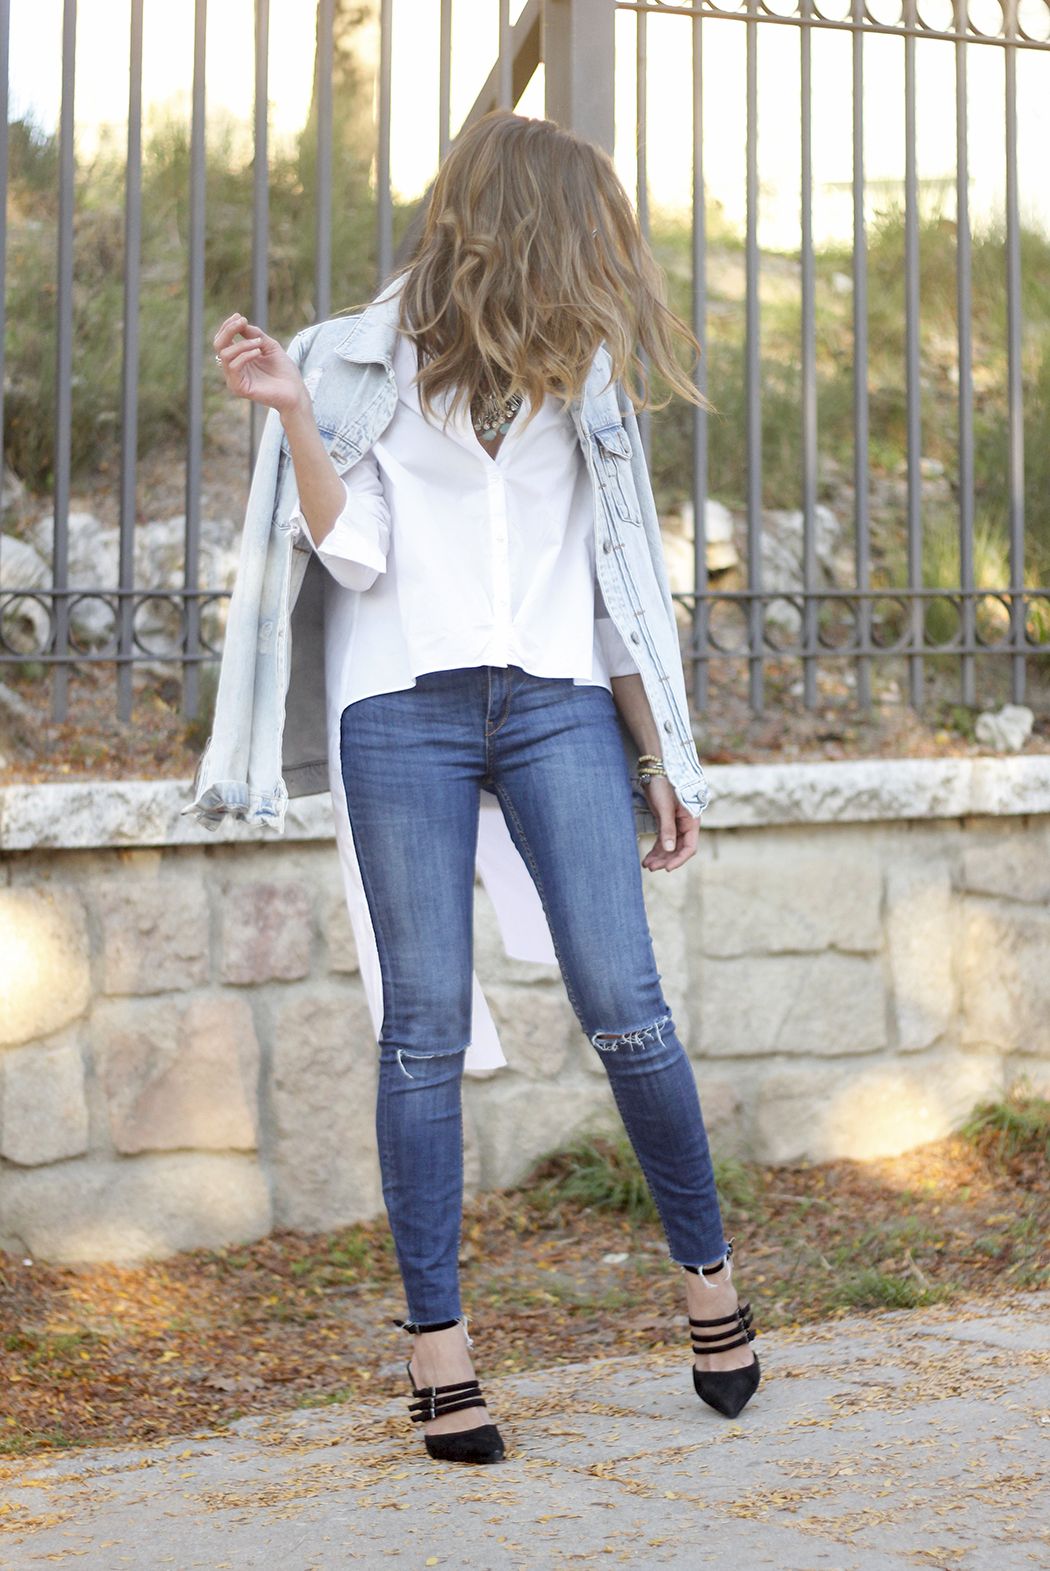 Denim Jacket Jeans White Shirt Black Heels outfit21